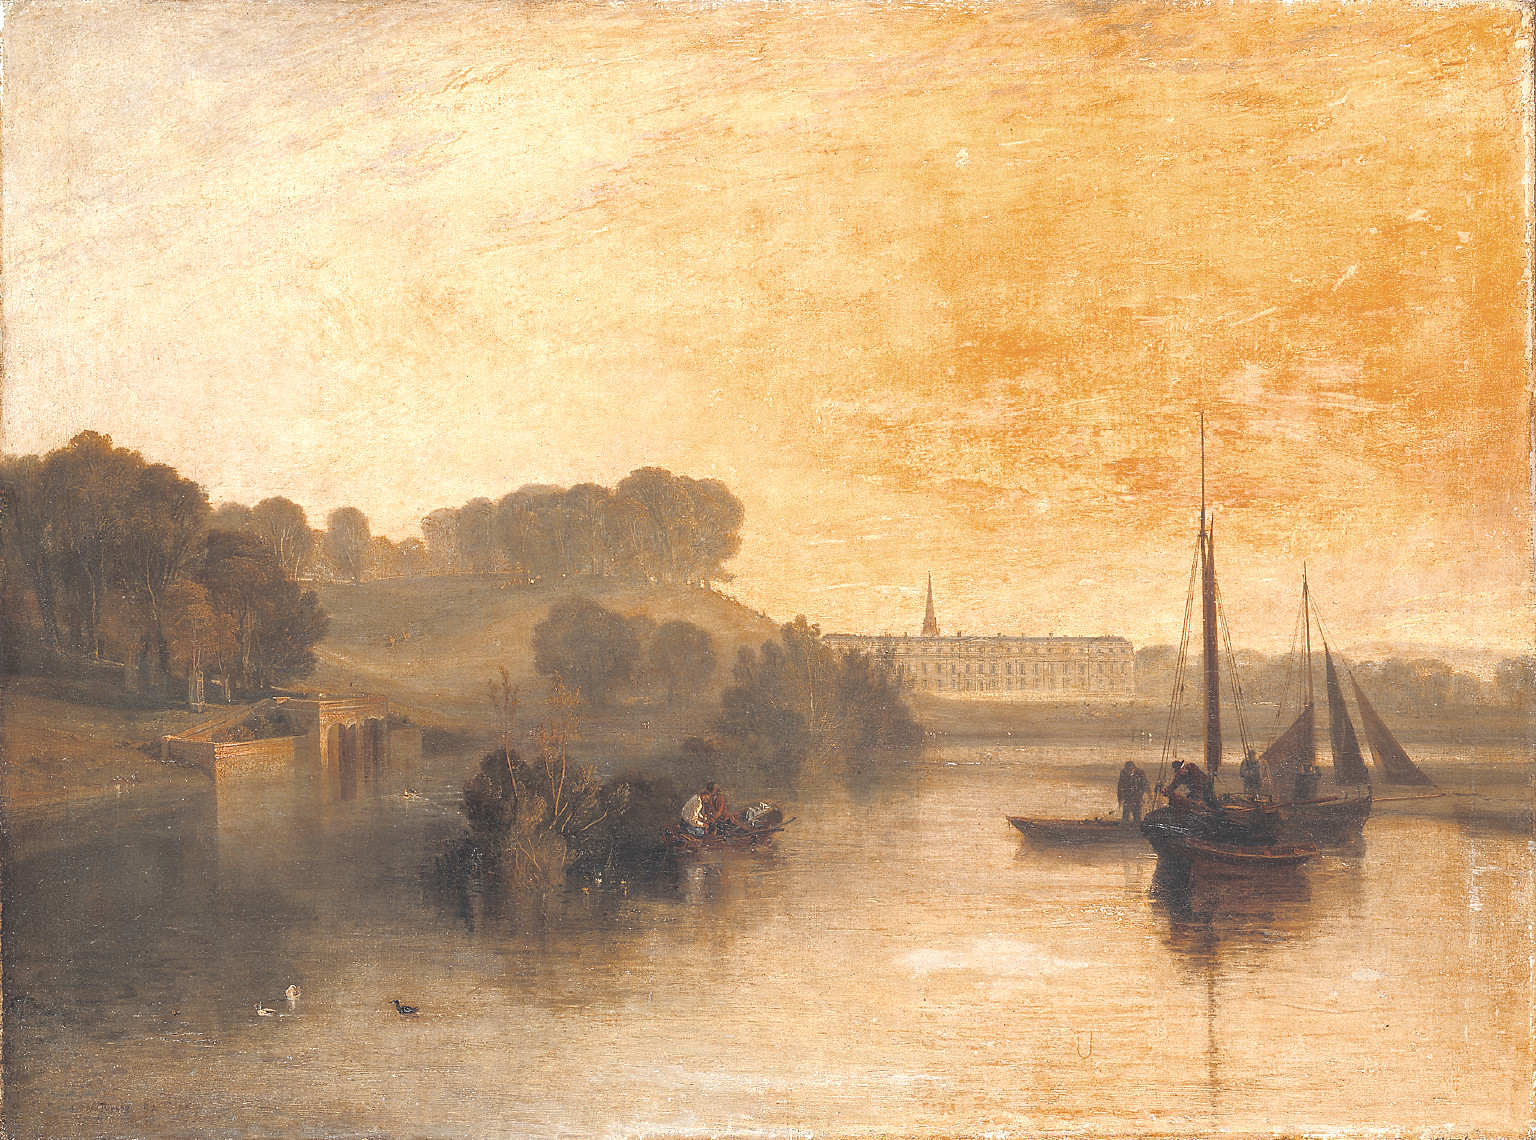 Petworth House - Turner and the Age of British Watercolour